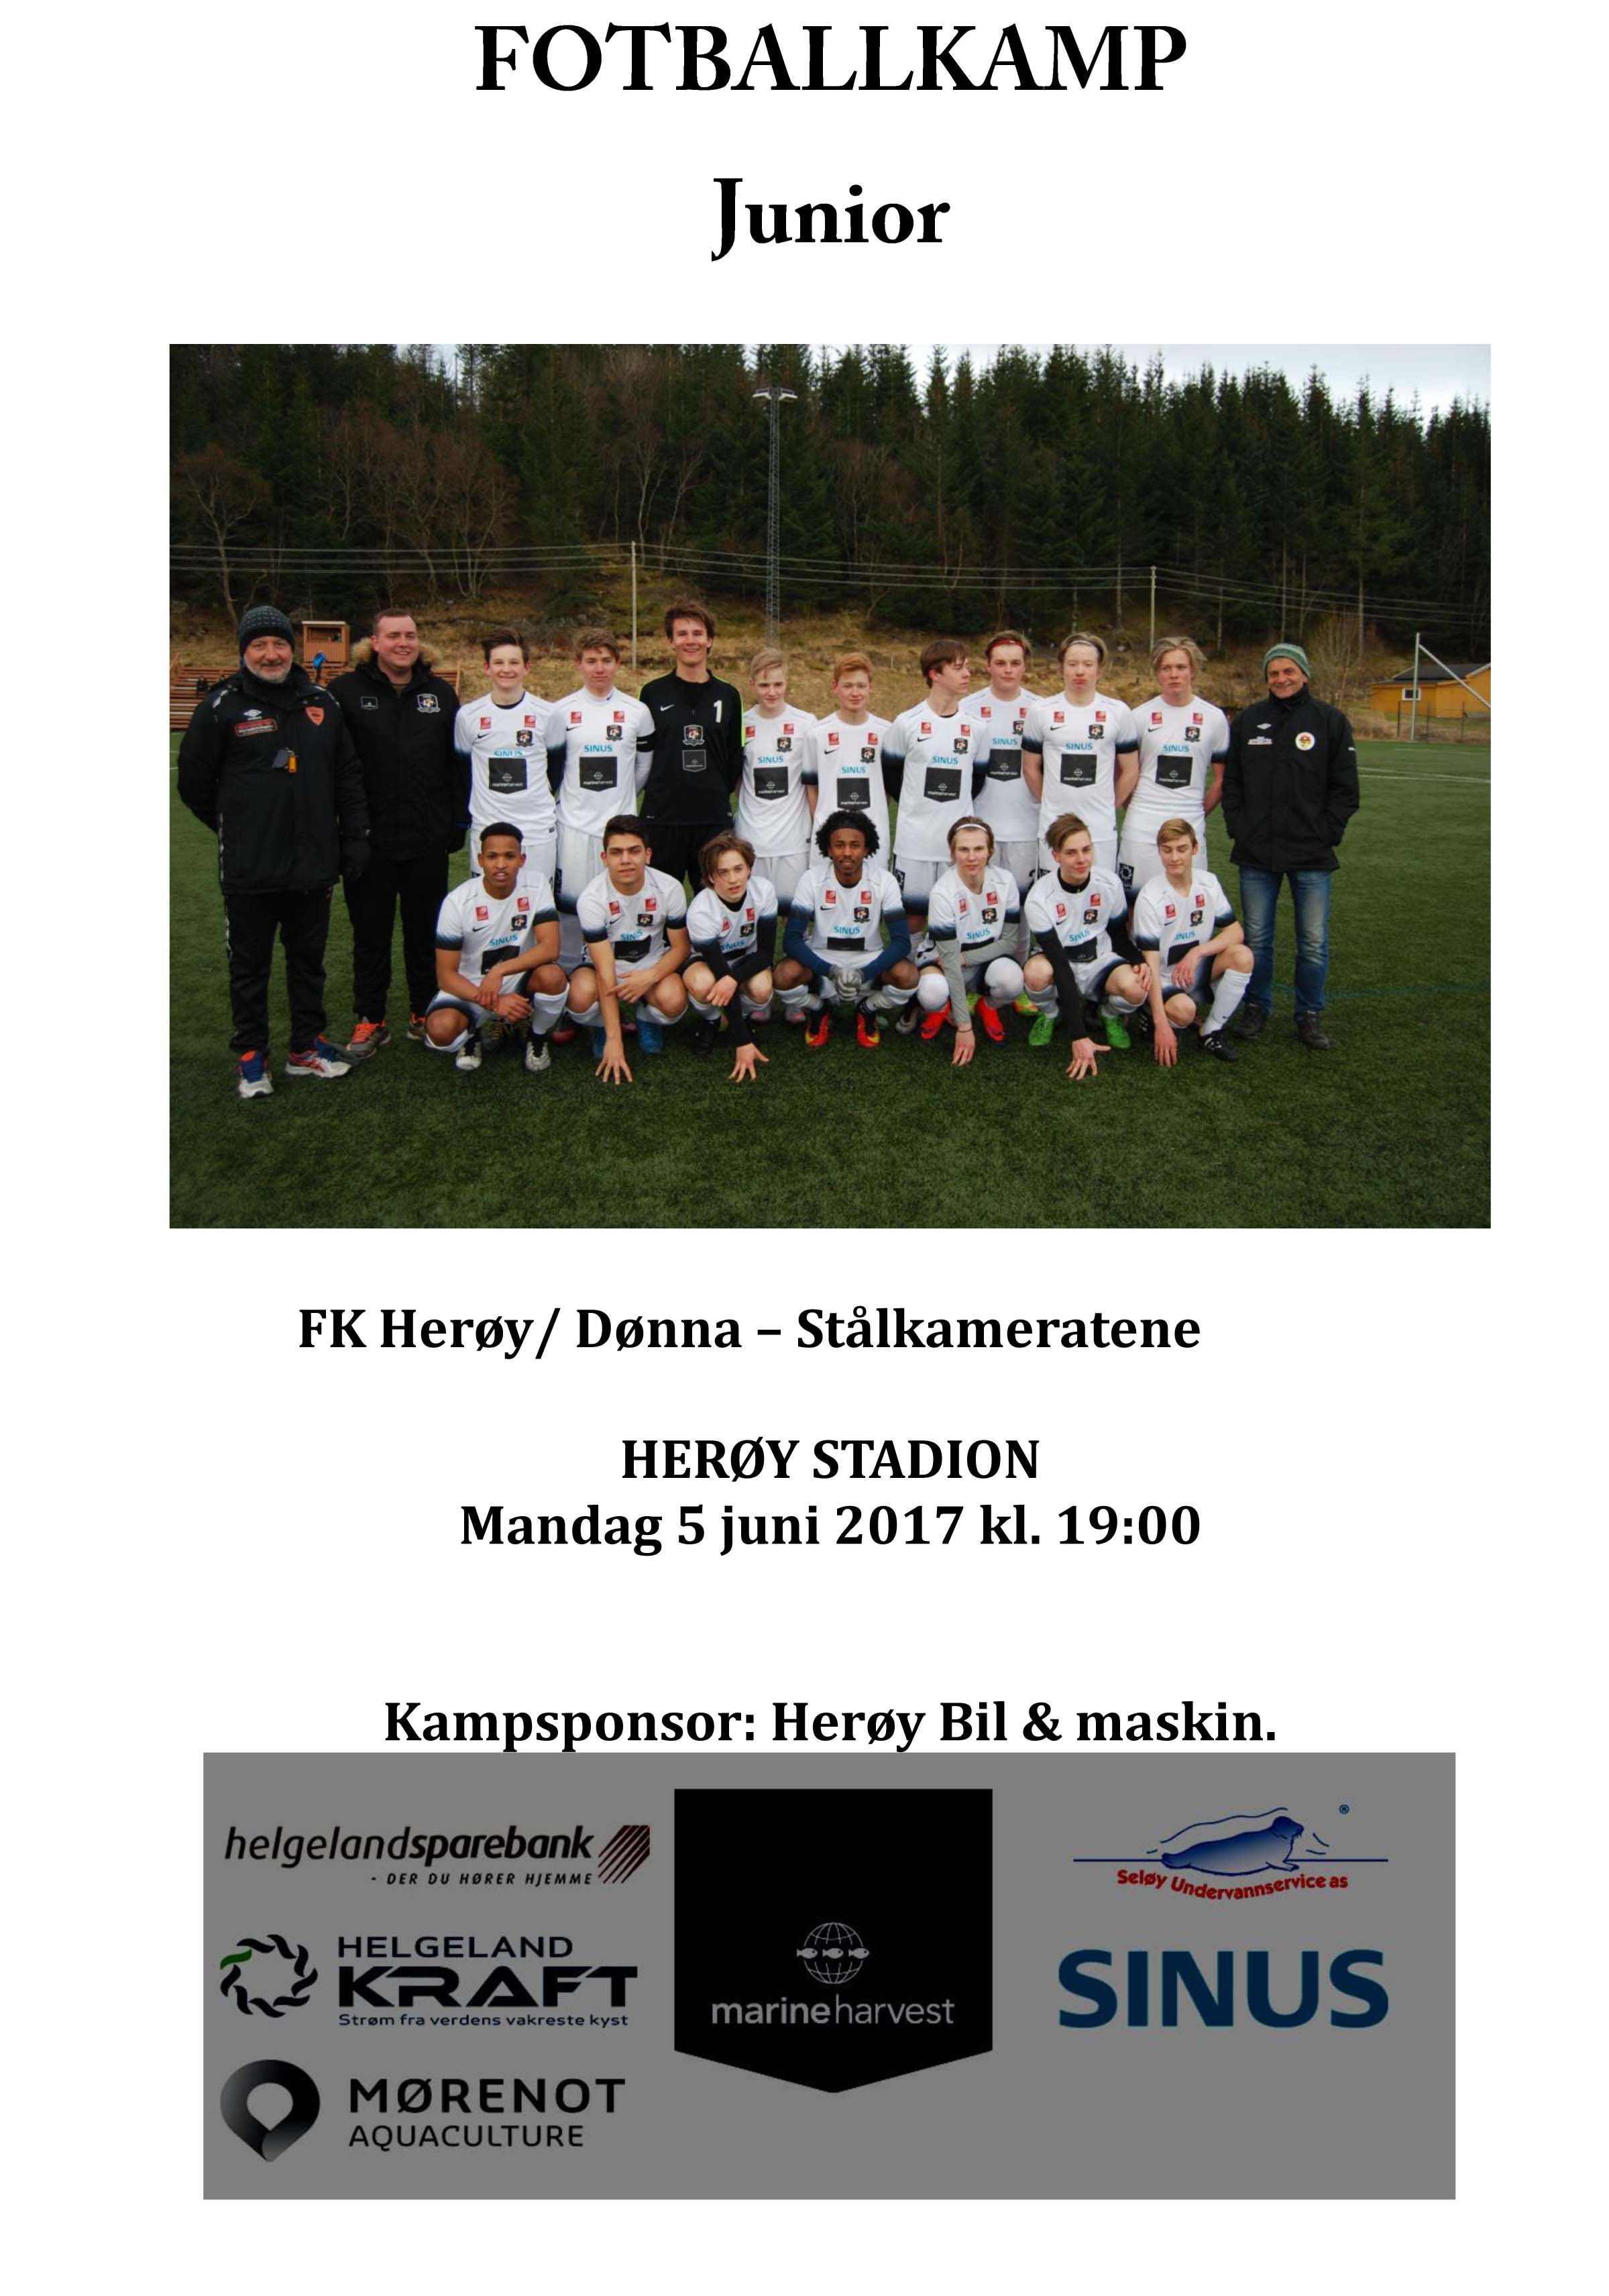 plakat hd stål jr.jpg